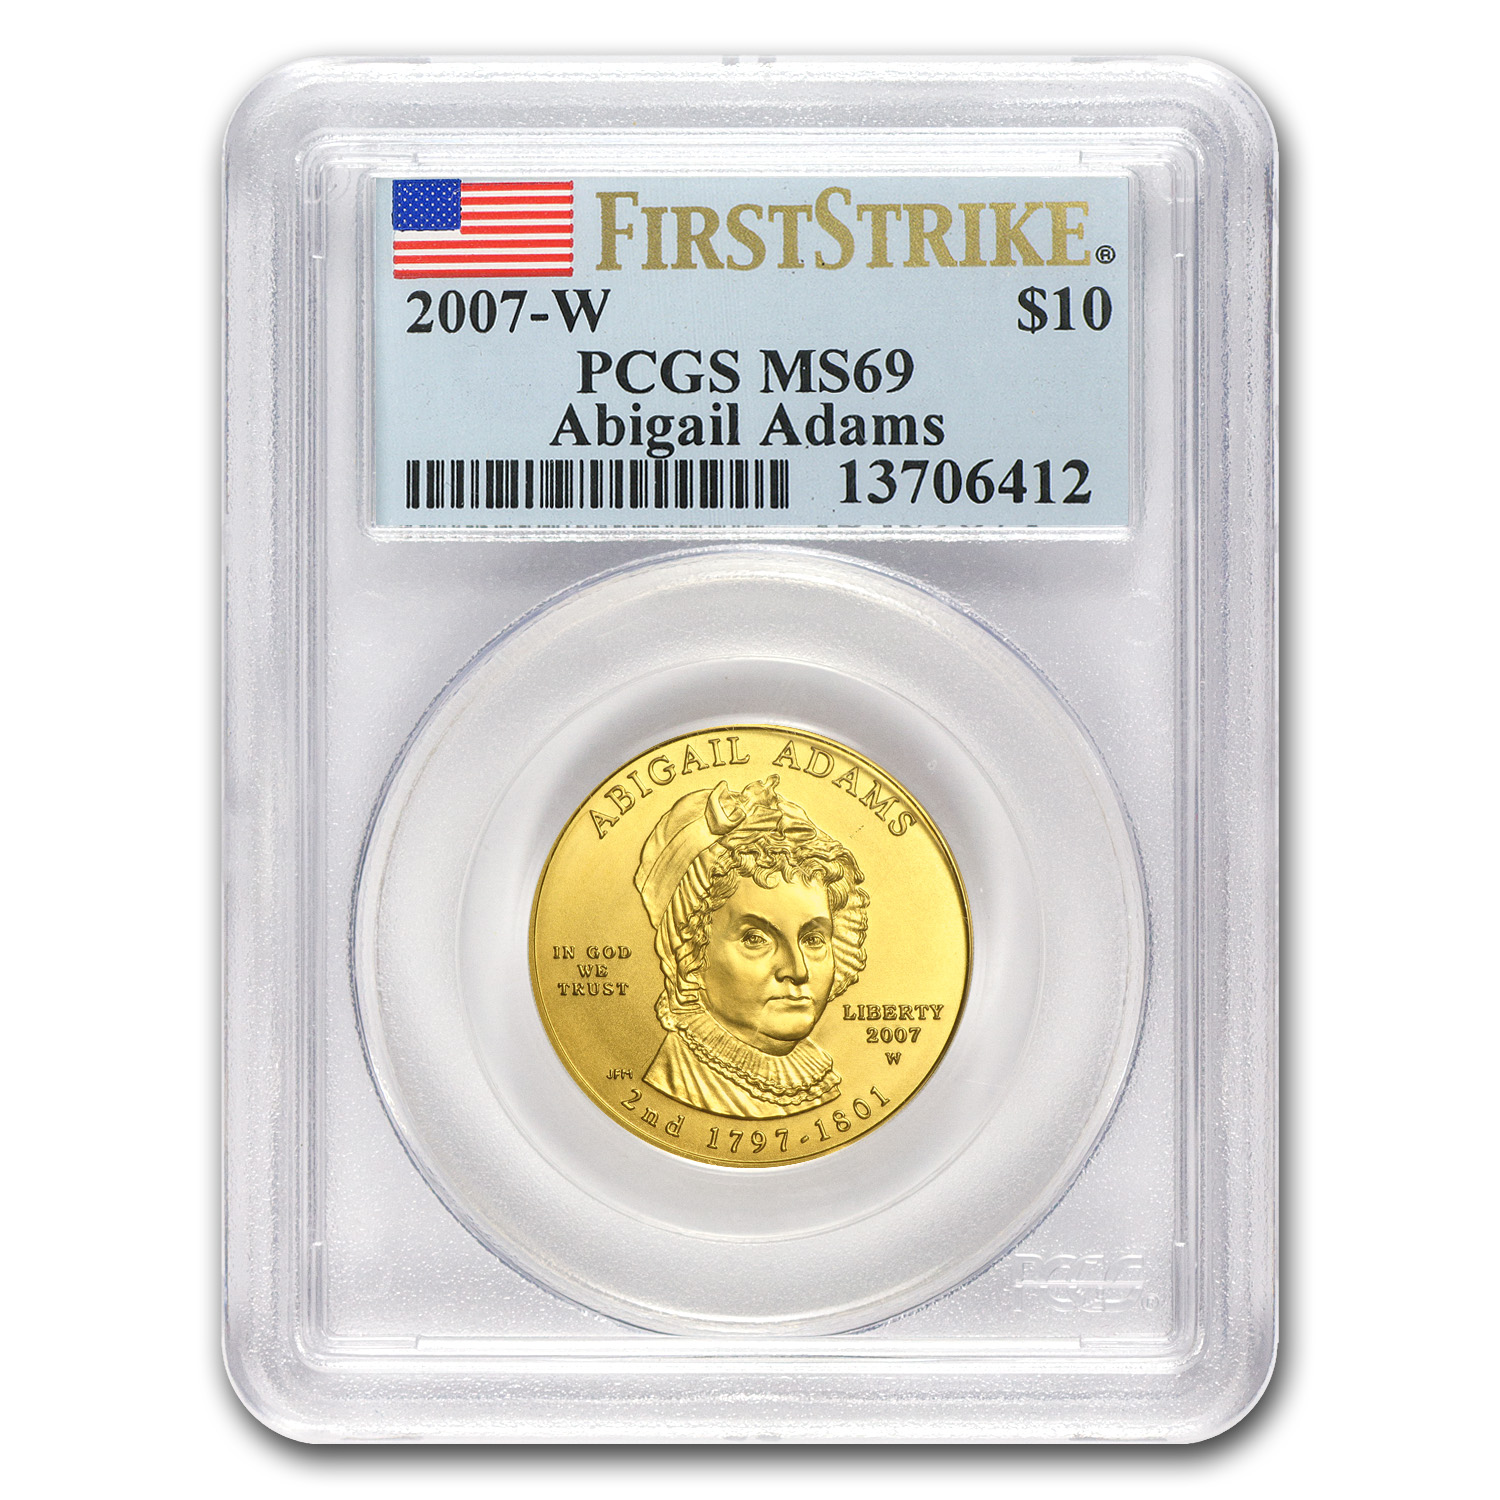 2007-W 1/2 oz Gold Abigail Adams MS-69 PCGS (First Strike)